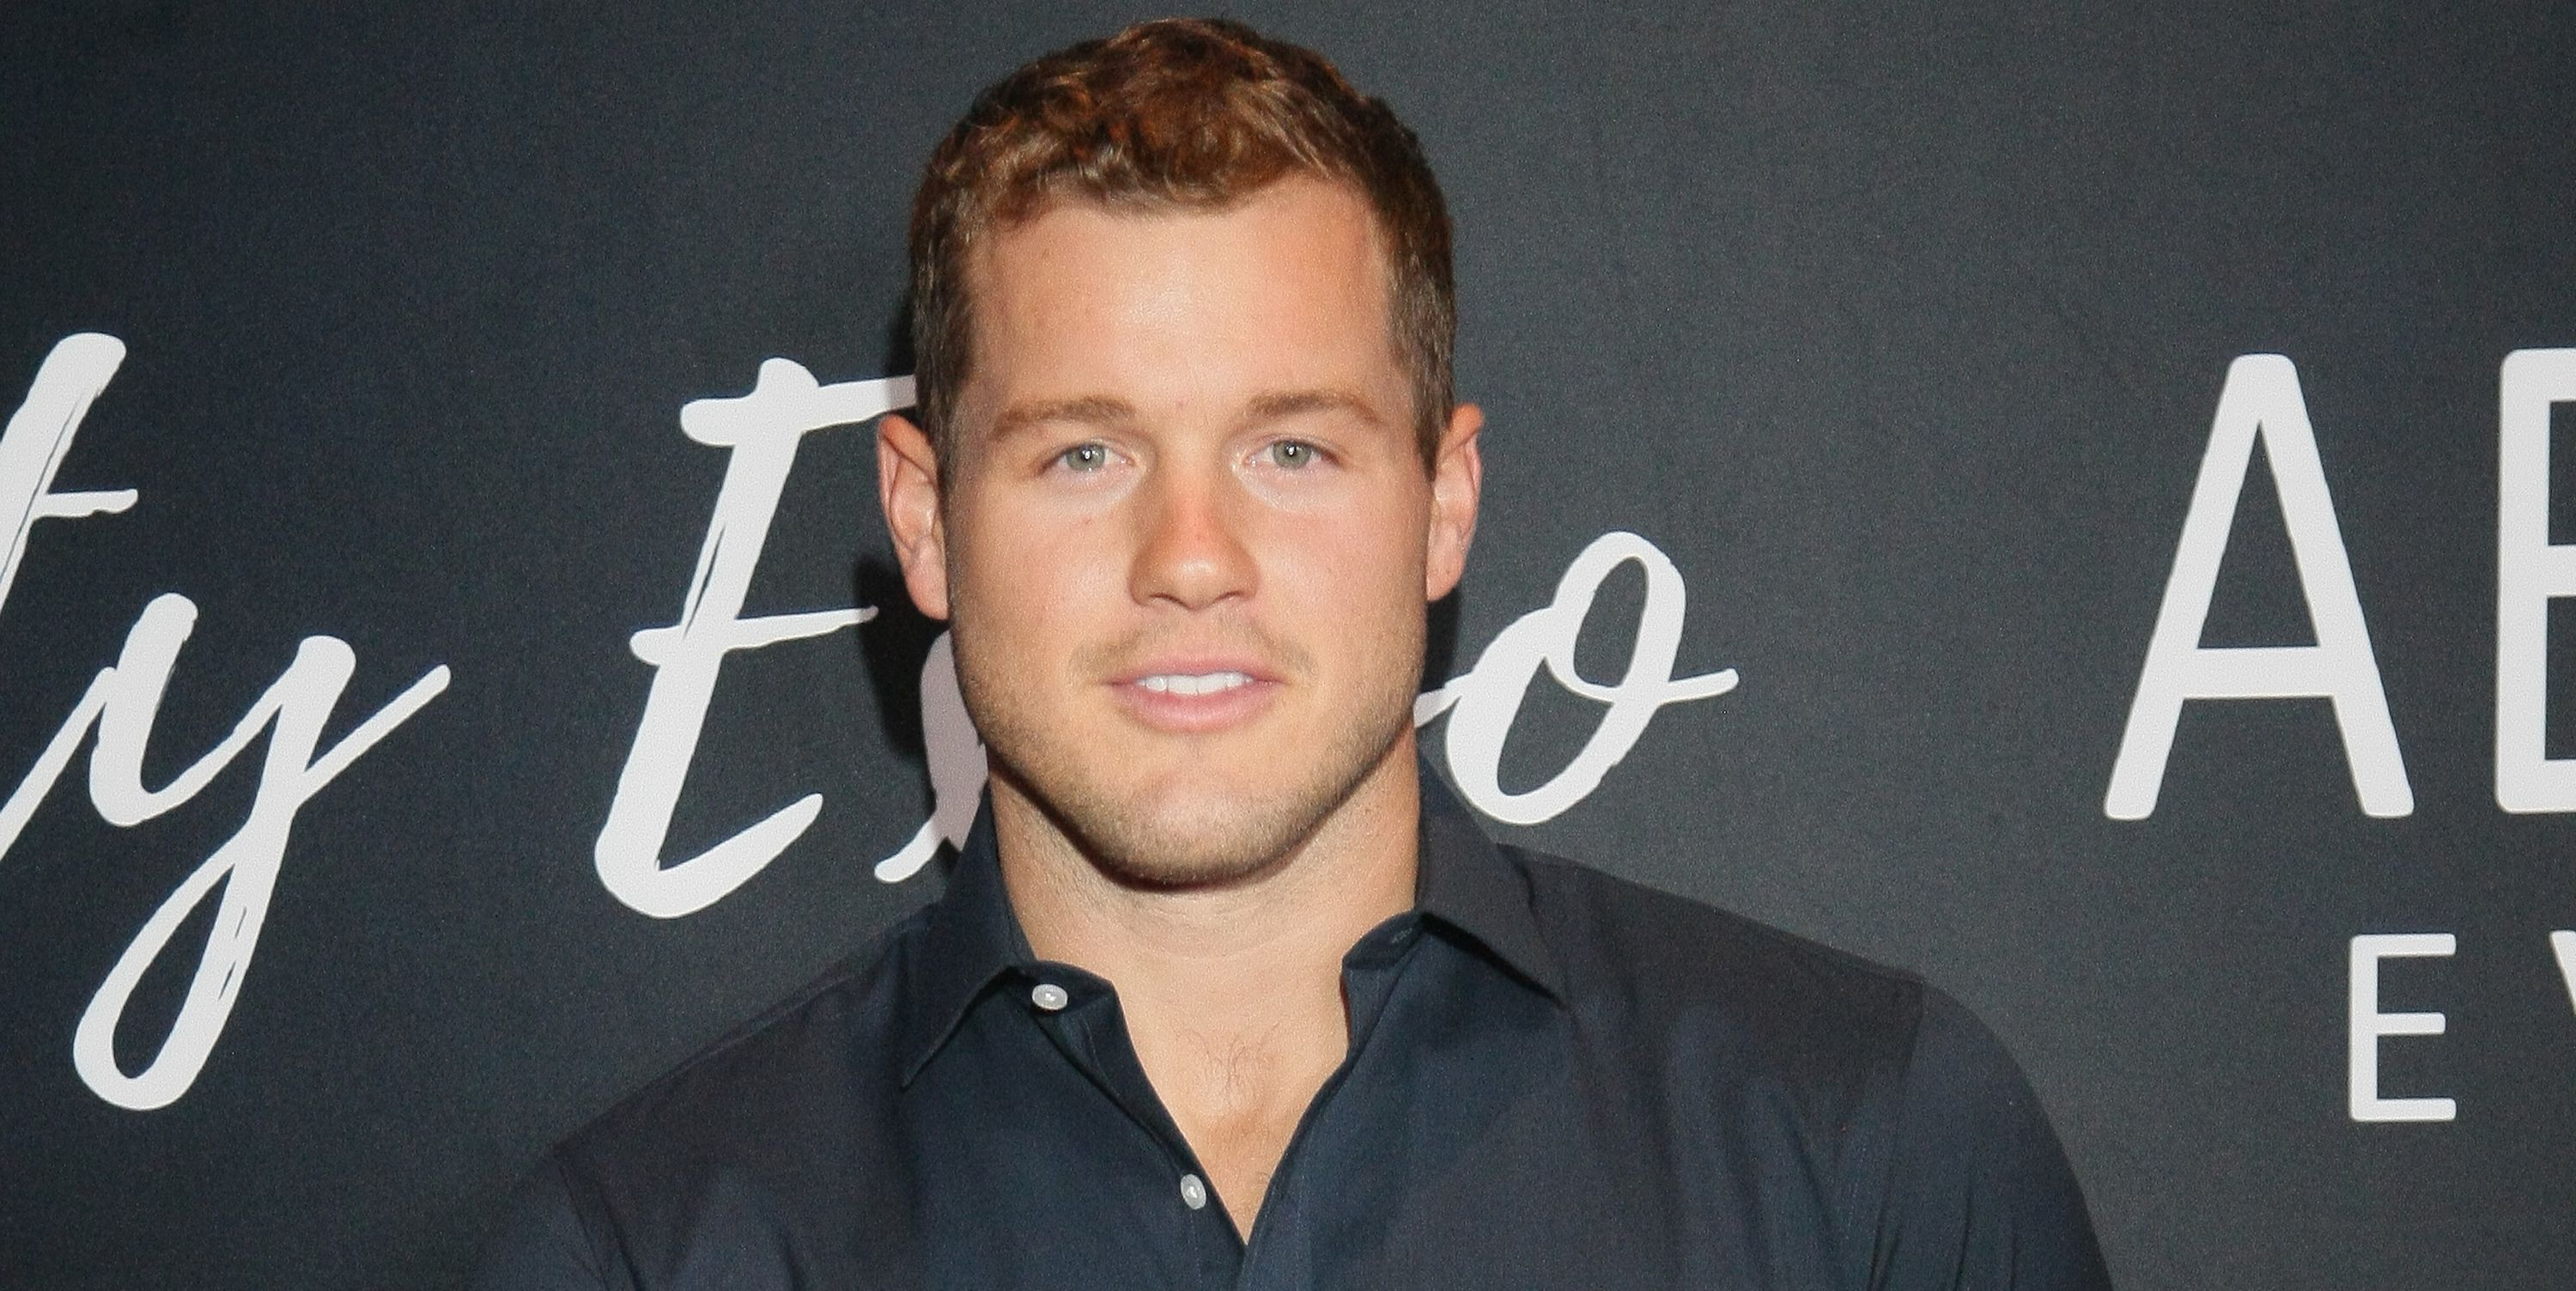 Colton Underwood Is Reportedly DTF and Lose His Virginity on 'The Bachelor'